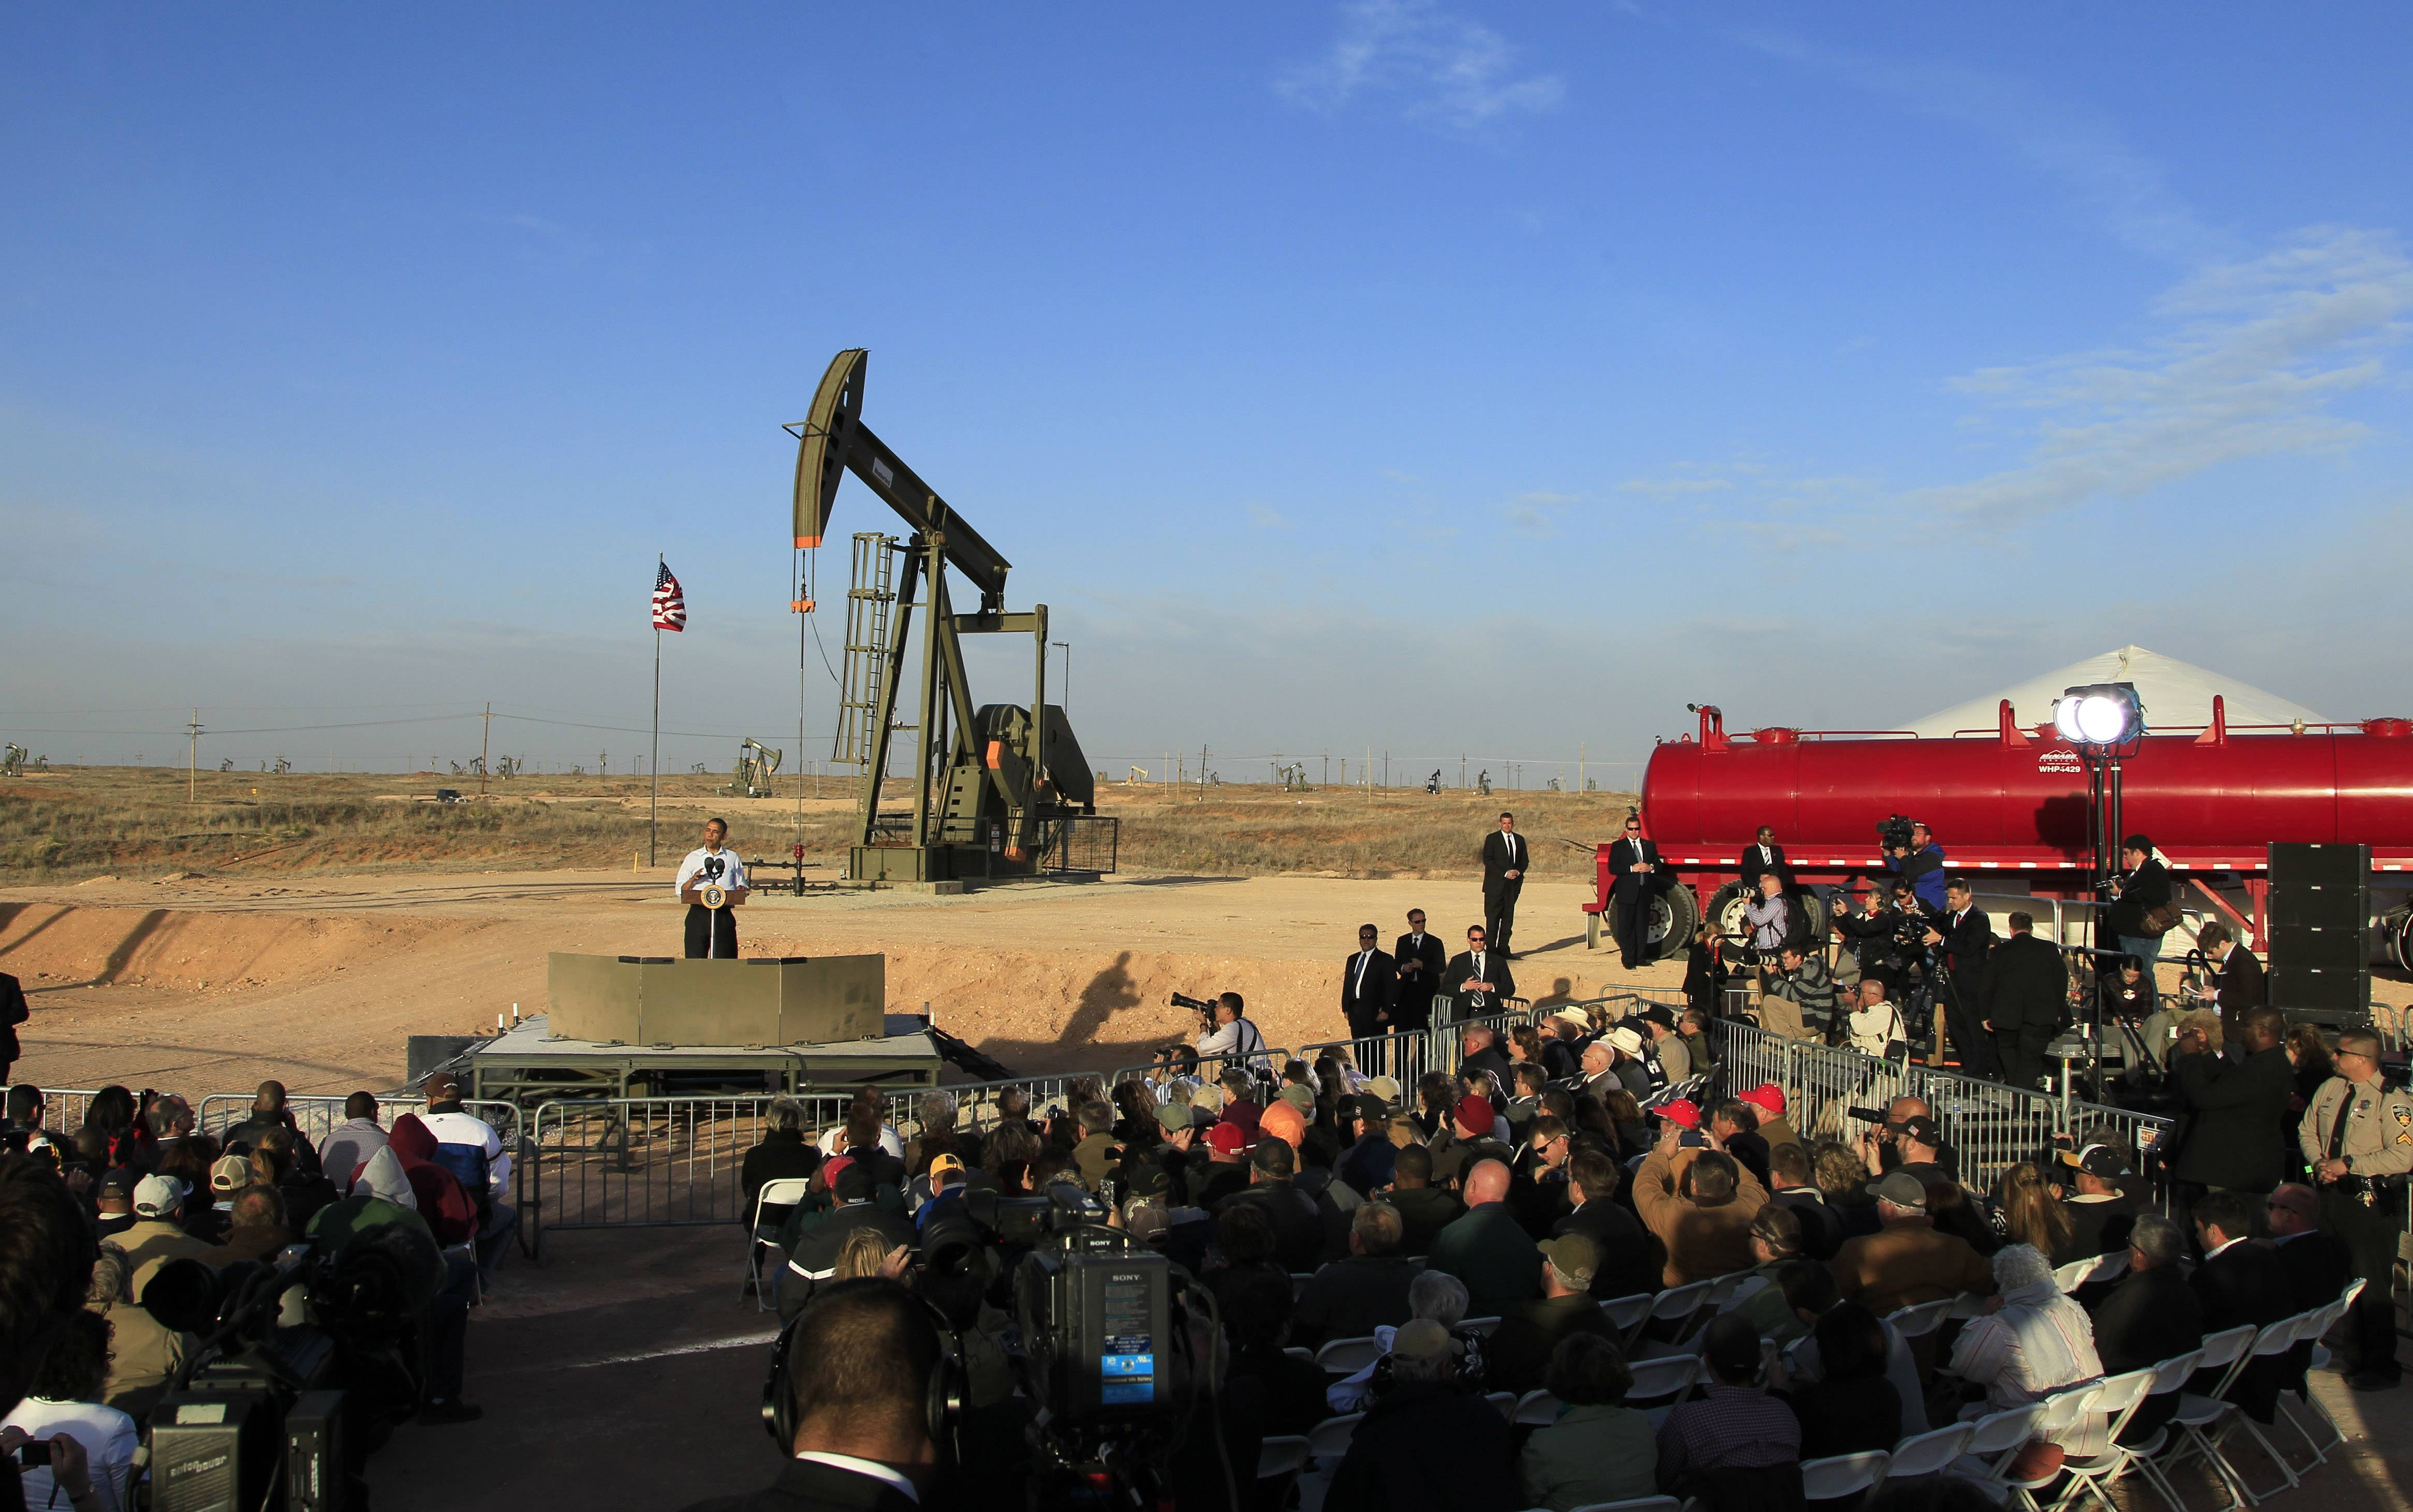 Associated Press With oil pump jacks as a backdrop, President Barack Obama speaks at an oil and gas field on federal lands in Maljamar, N.M. The government has failed to inspect thousands of oil and gas wells it considers potentially high risks for water contamination and other environmental damage, congressional investigators say.